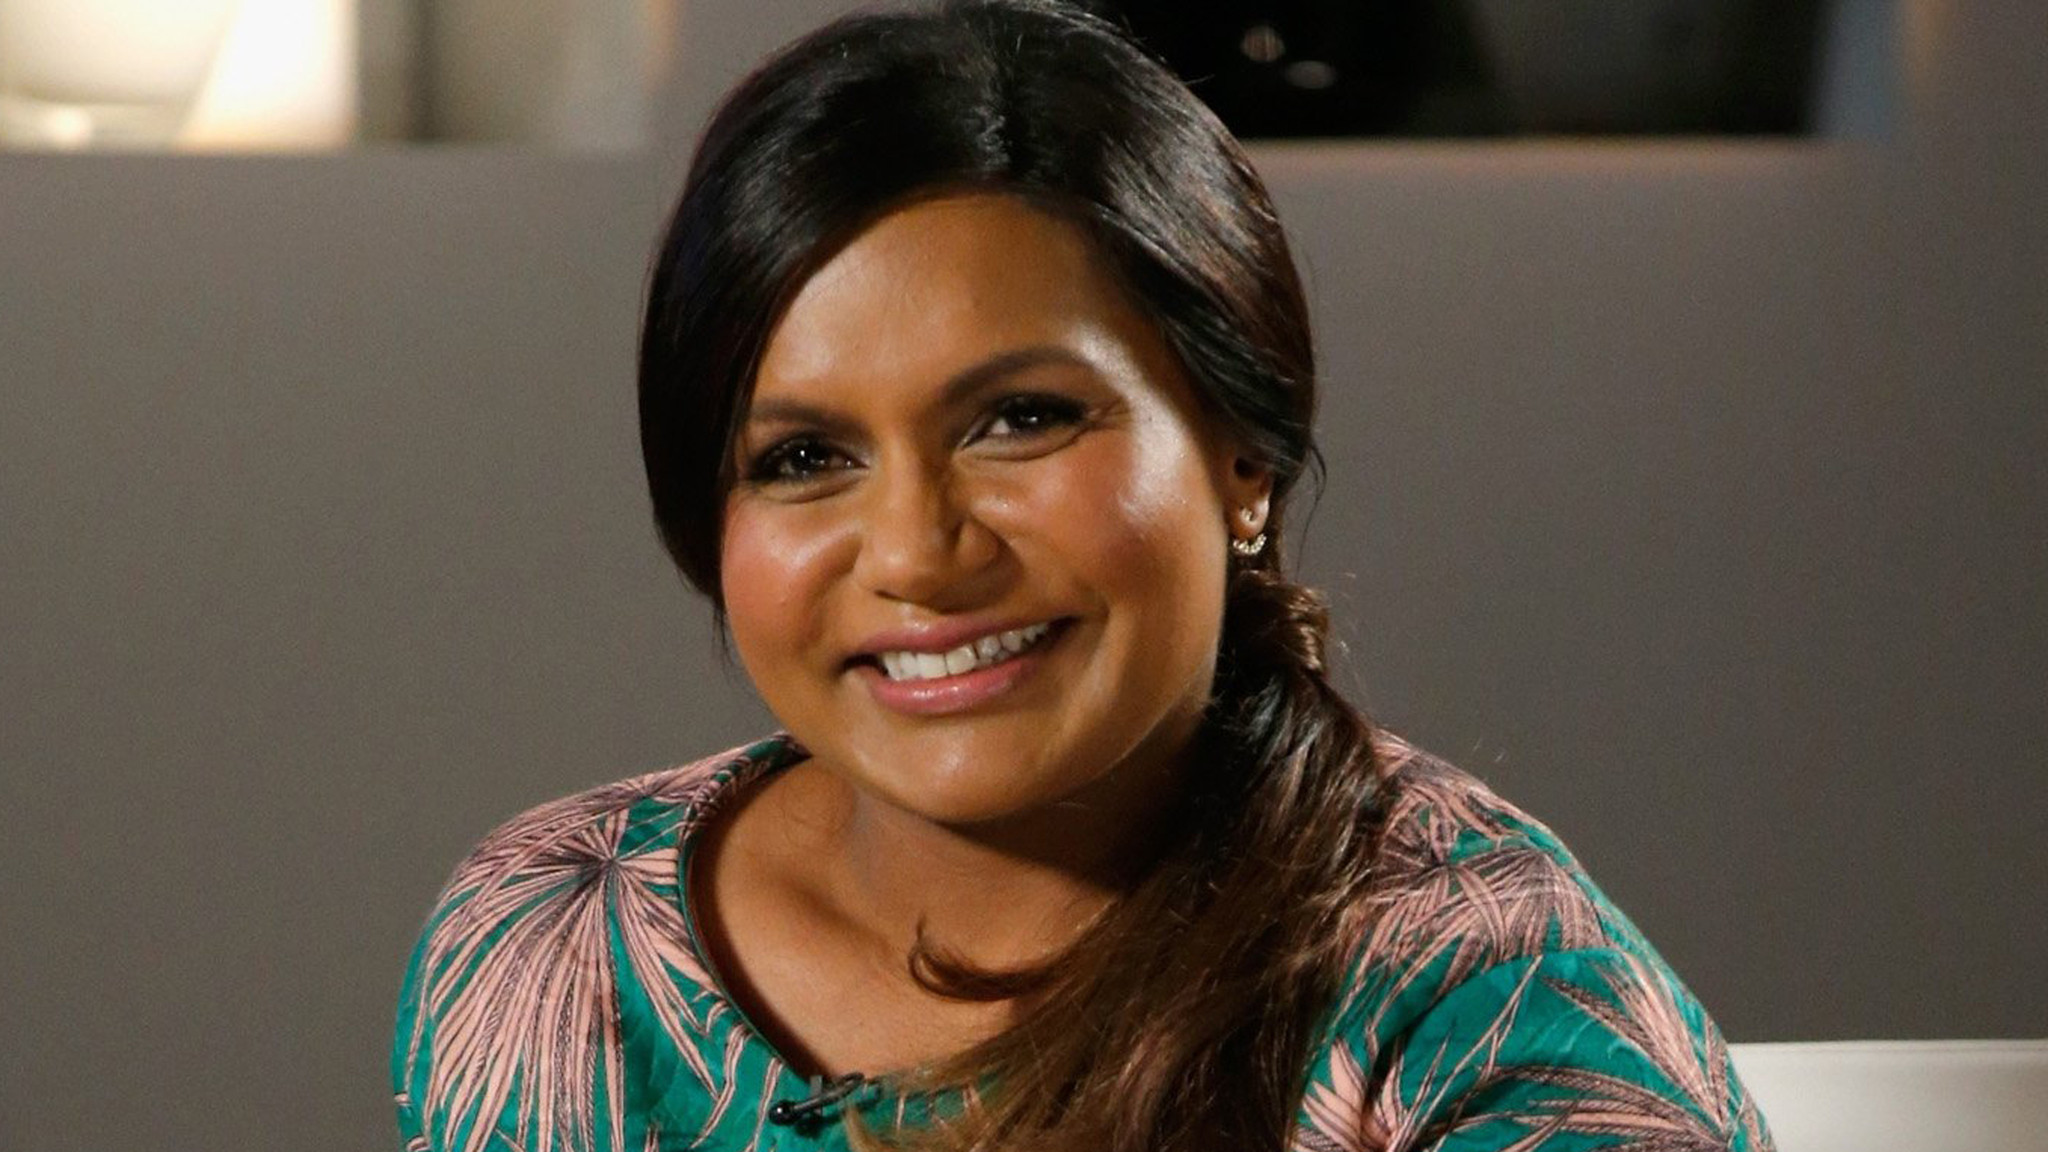 mindy kaling and bj novak relationship questions